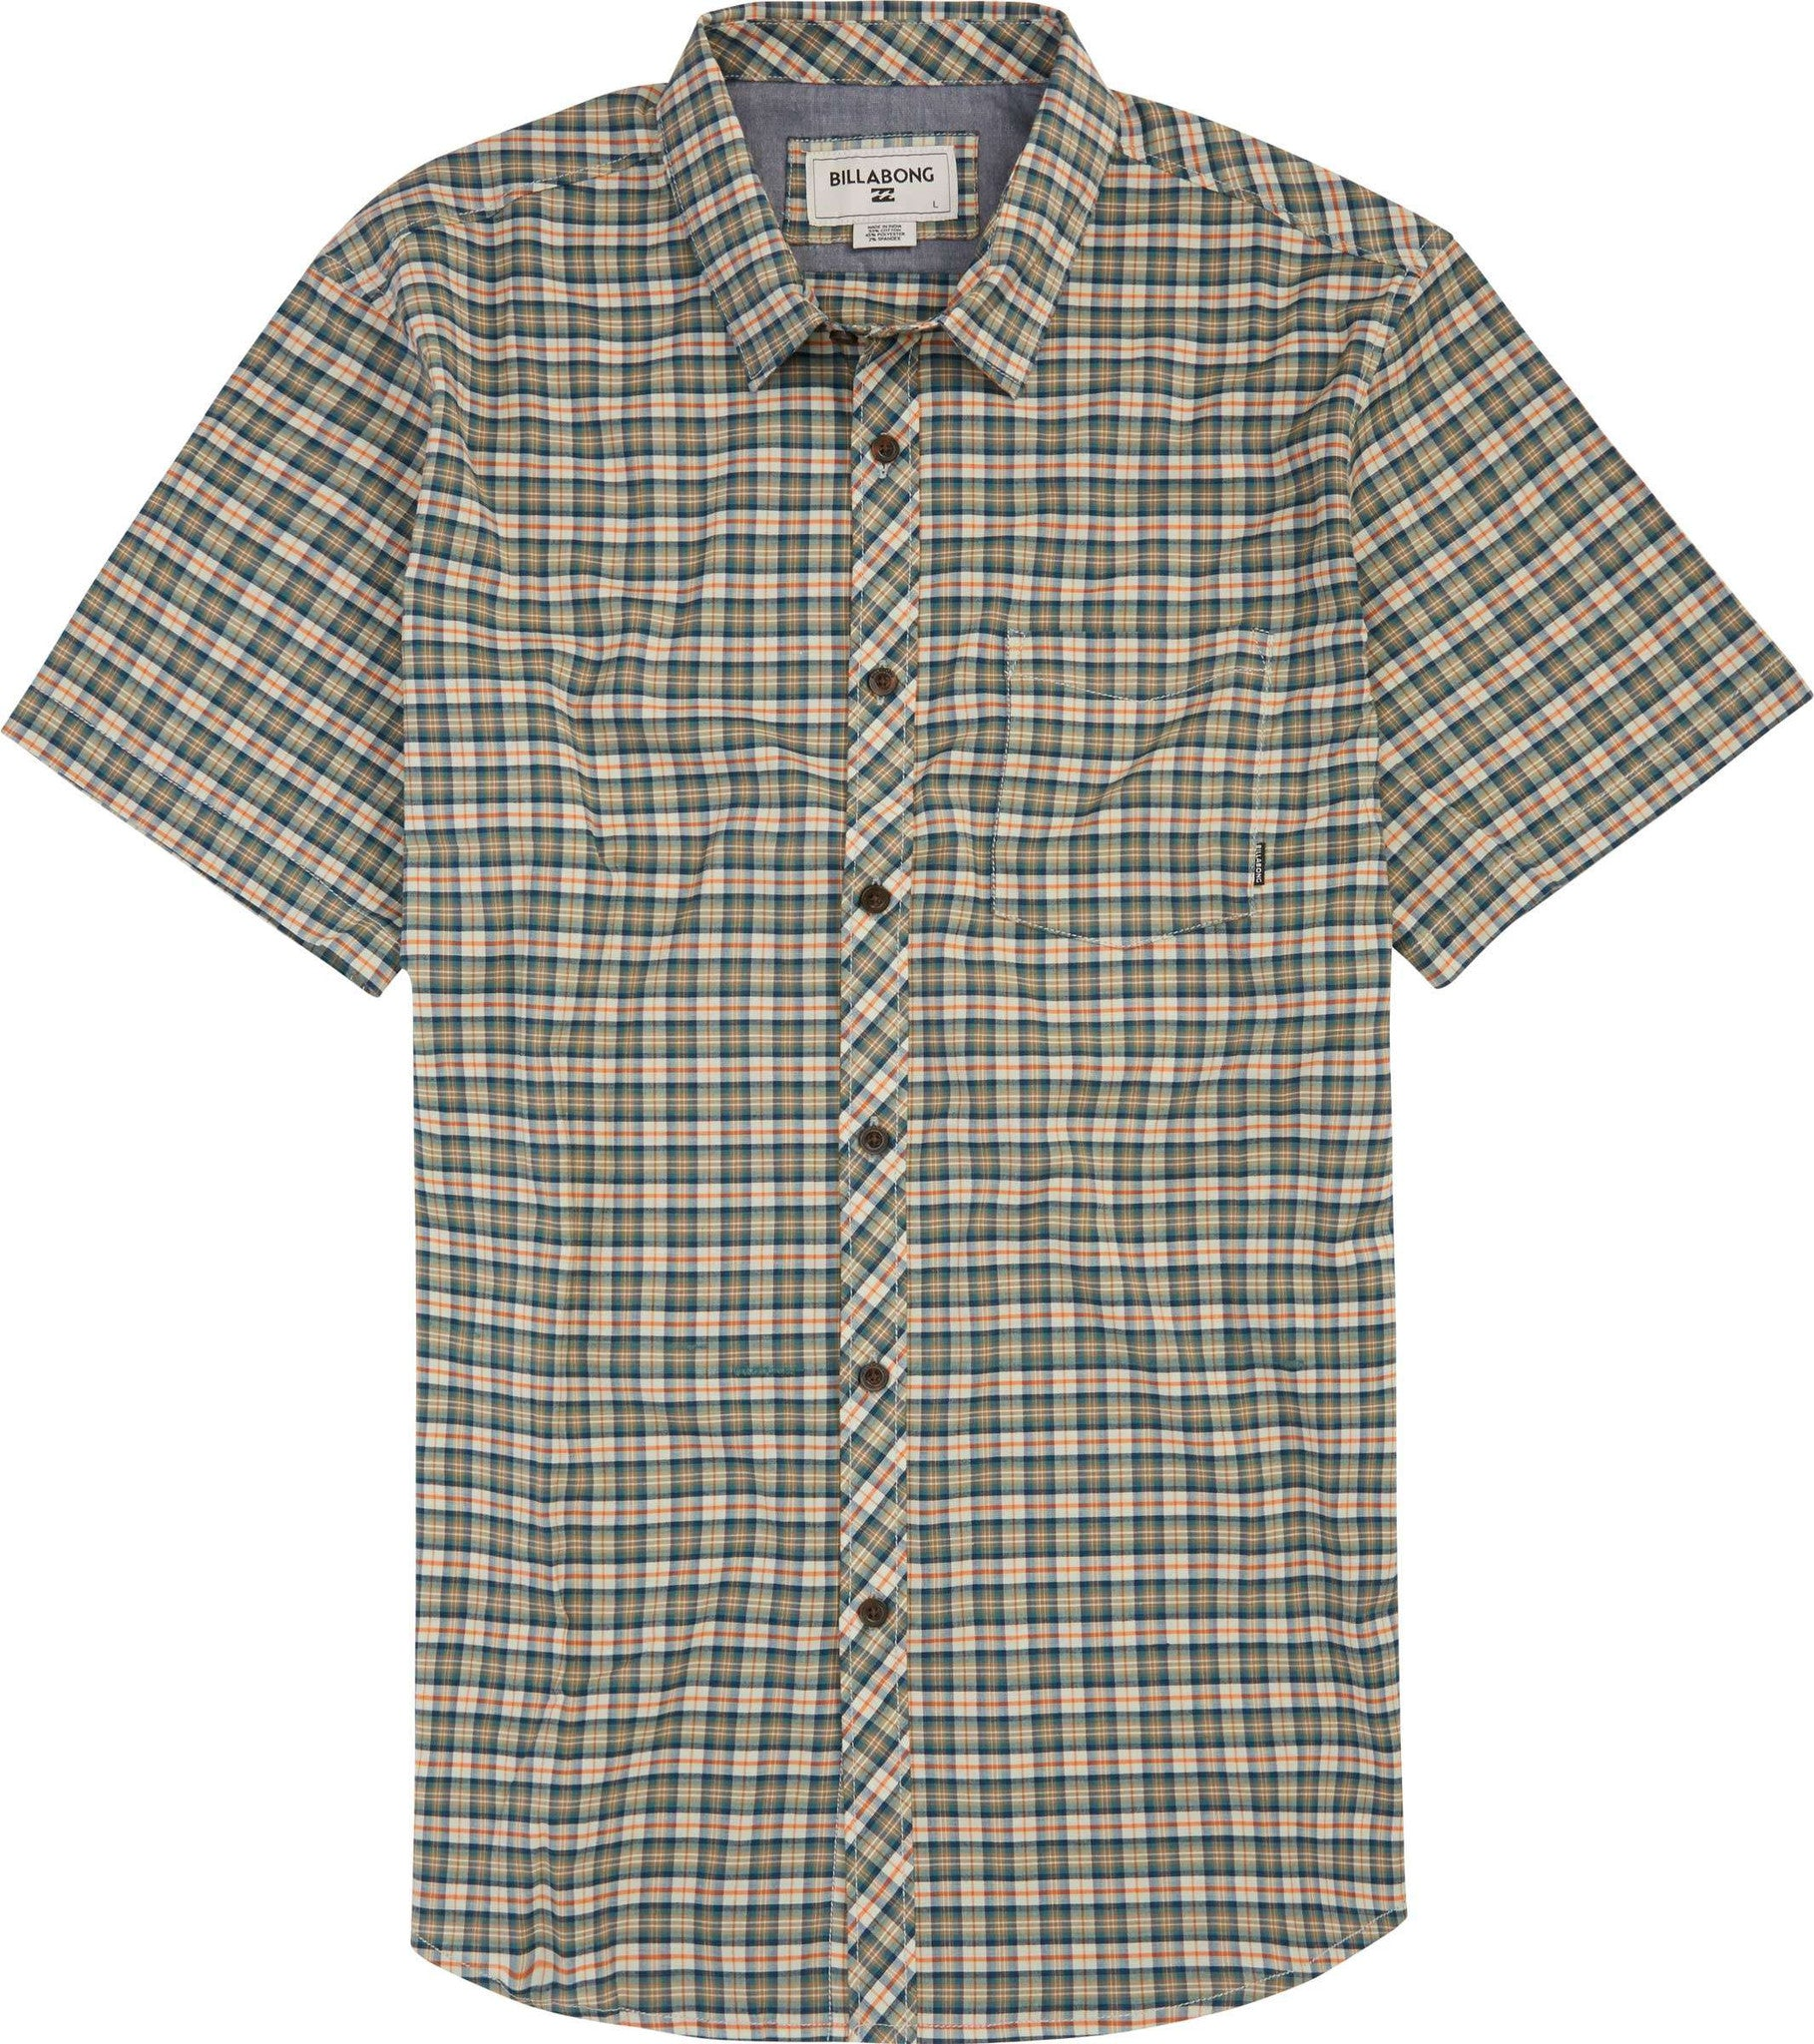 Men's Green Patterson Stretch Short Sleeve Woven Shirt by Billabong